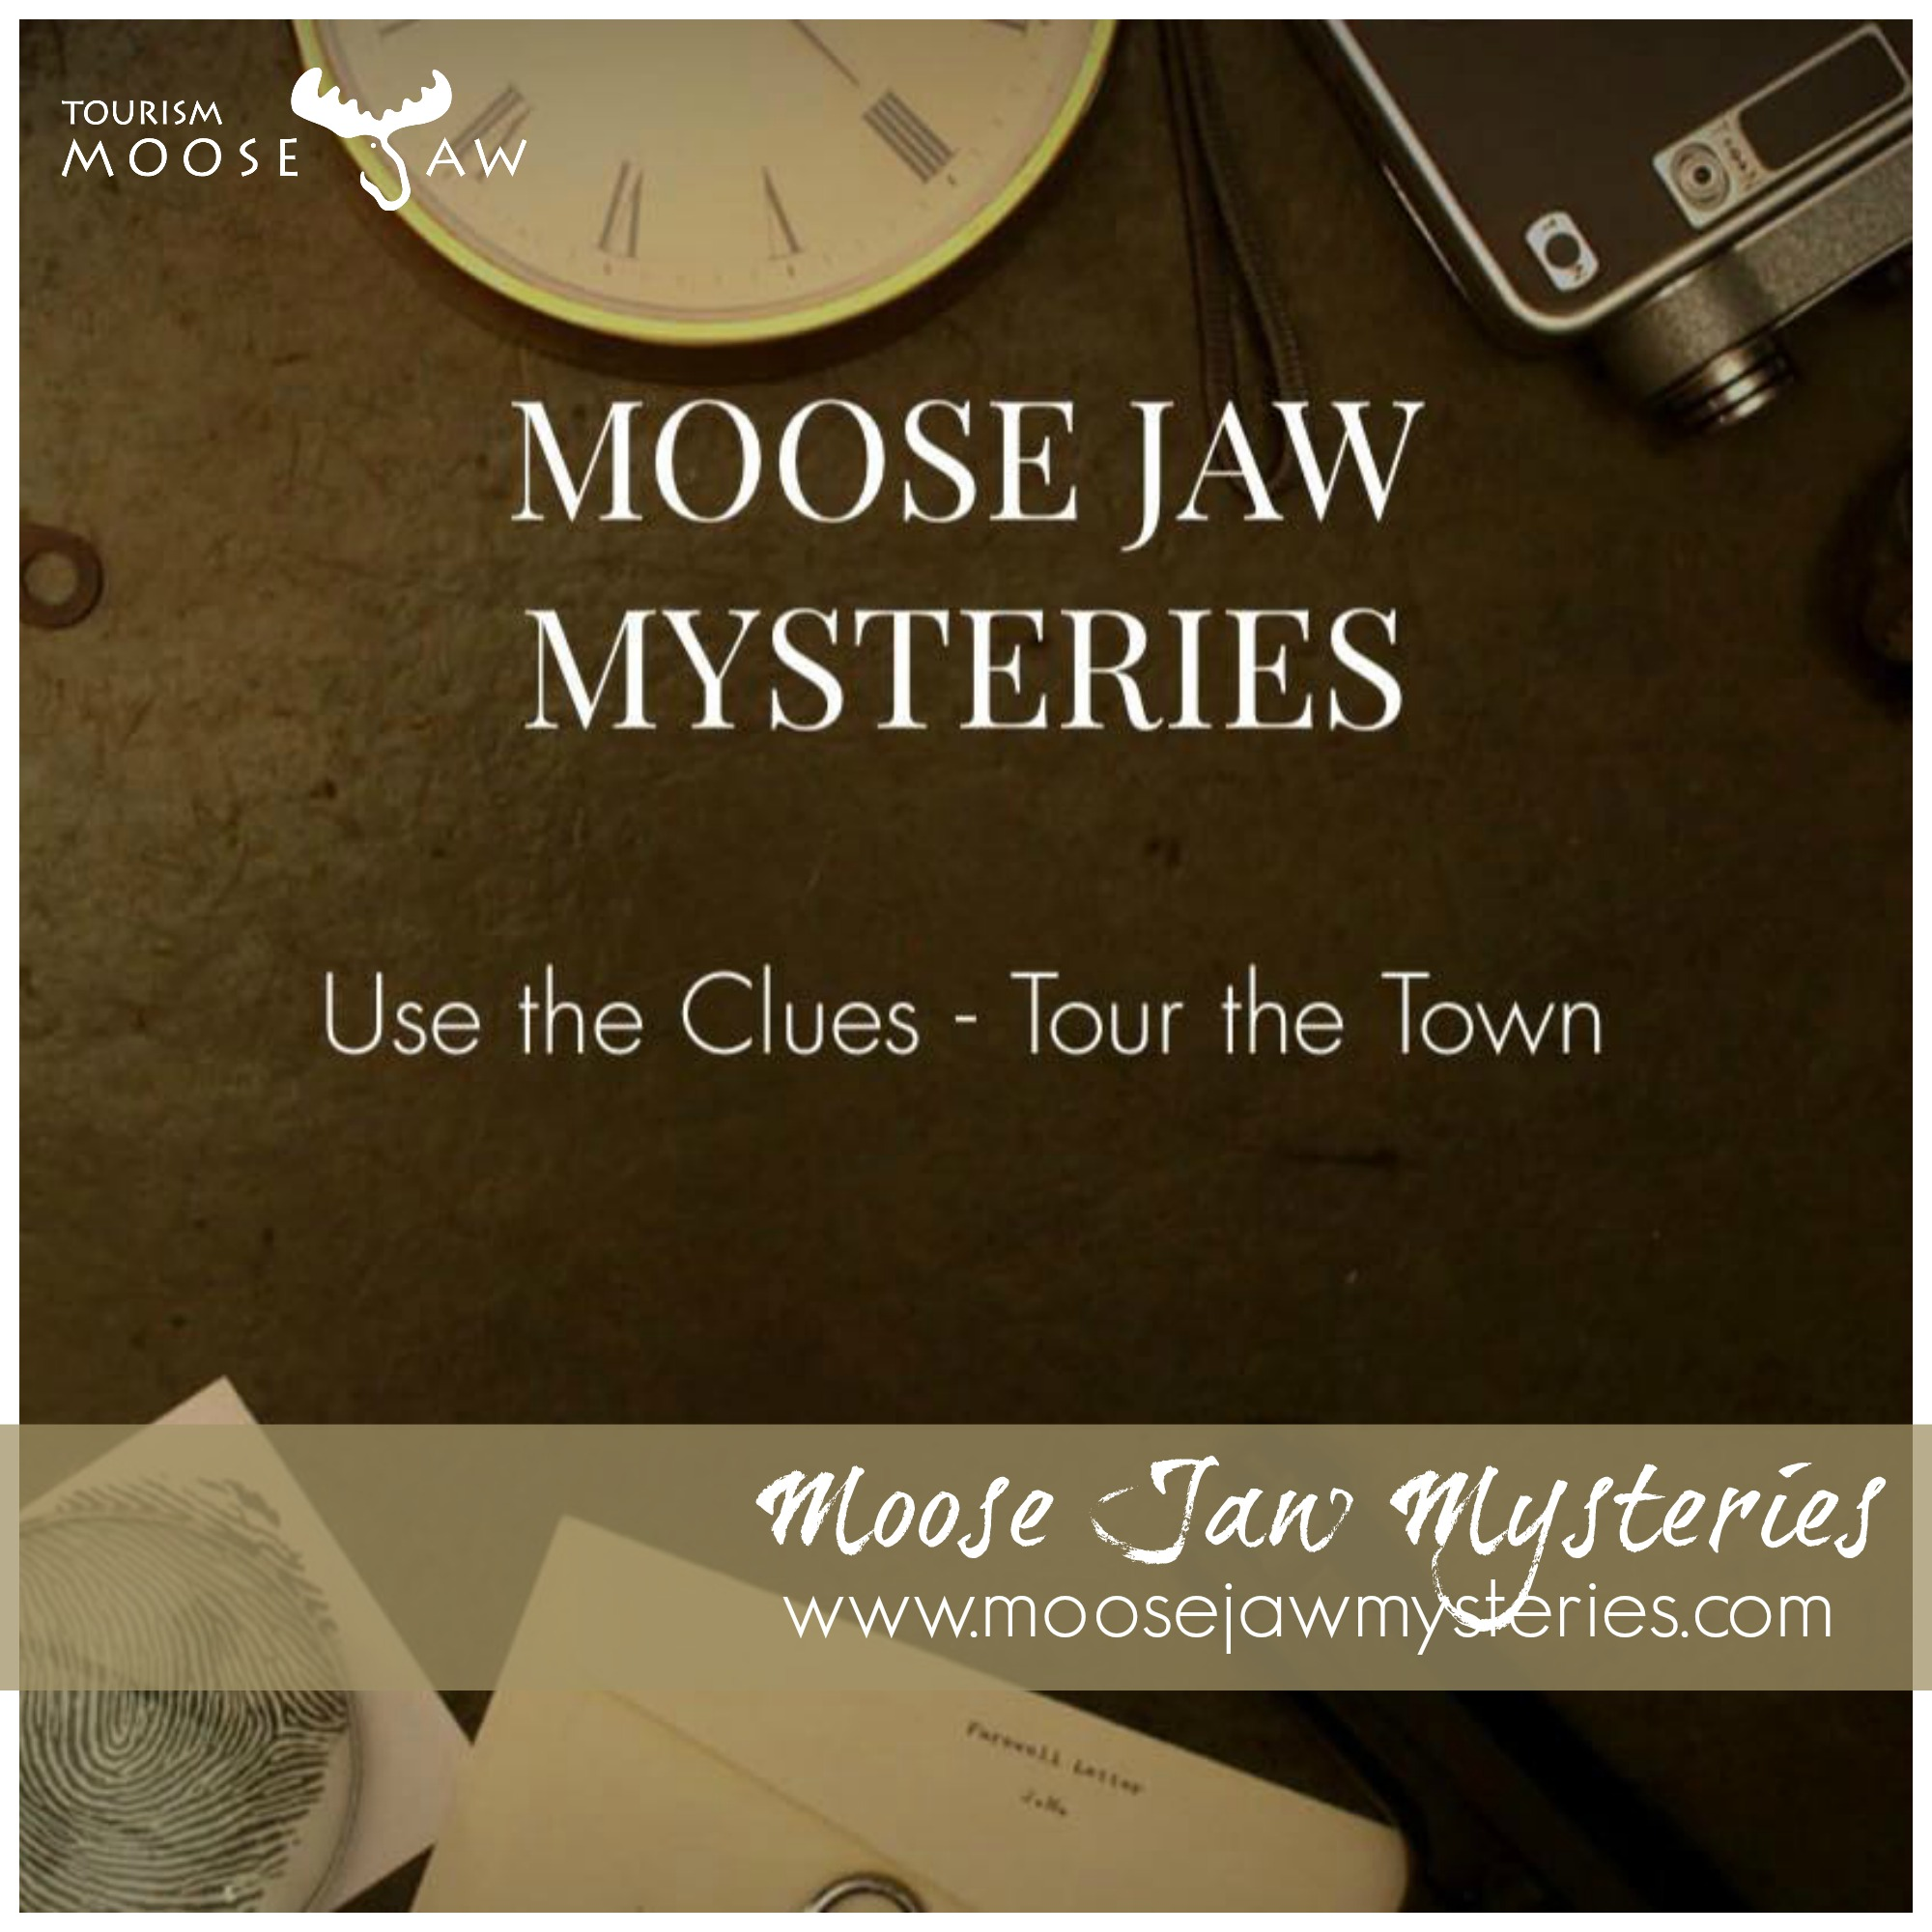 Moose Jaw Mysteries.jpg